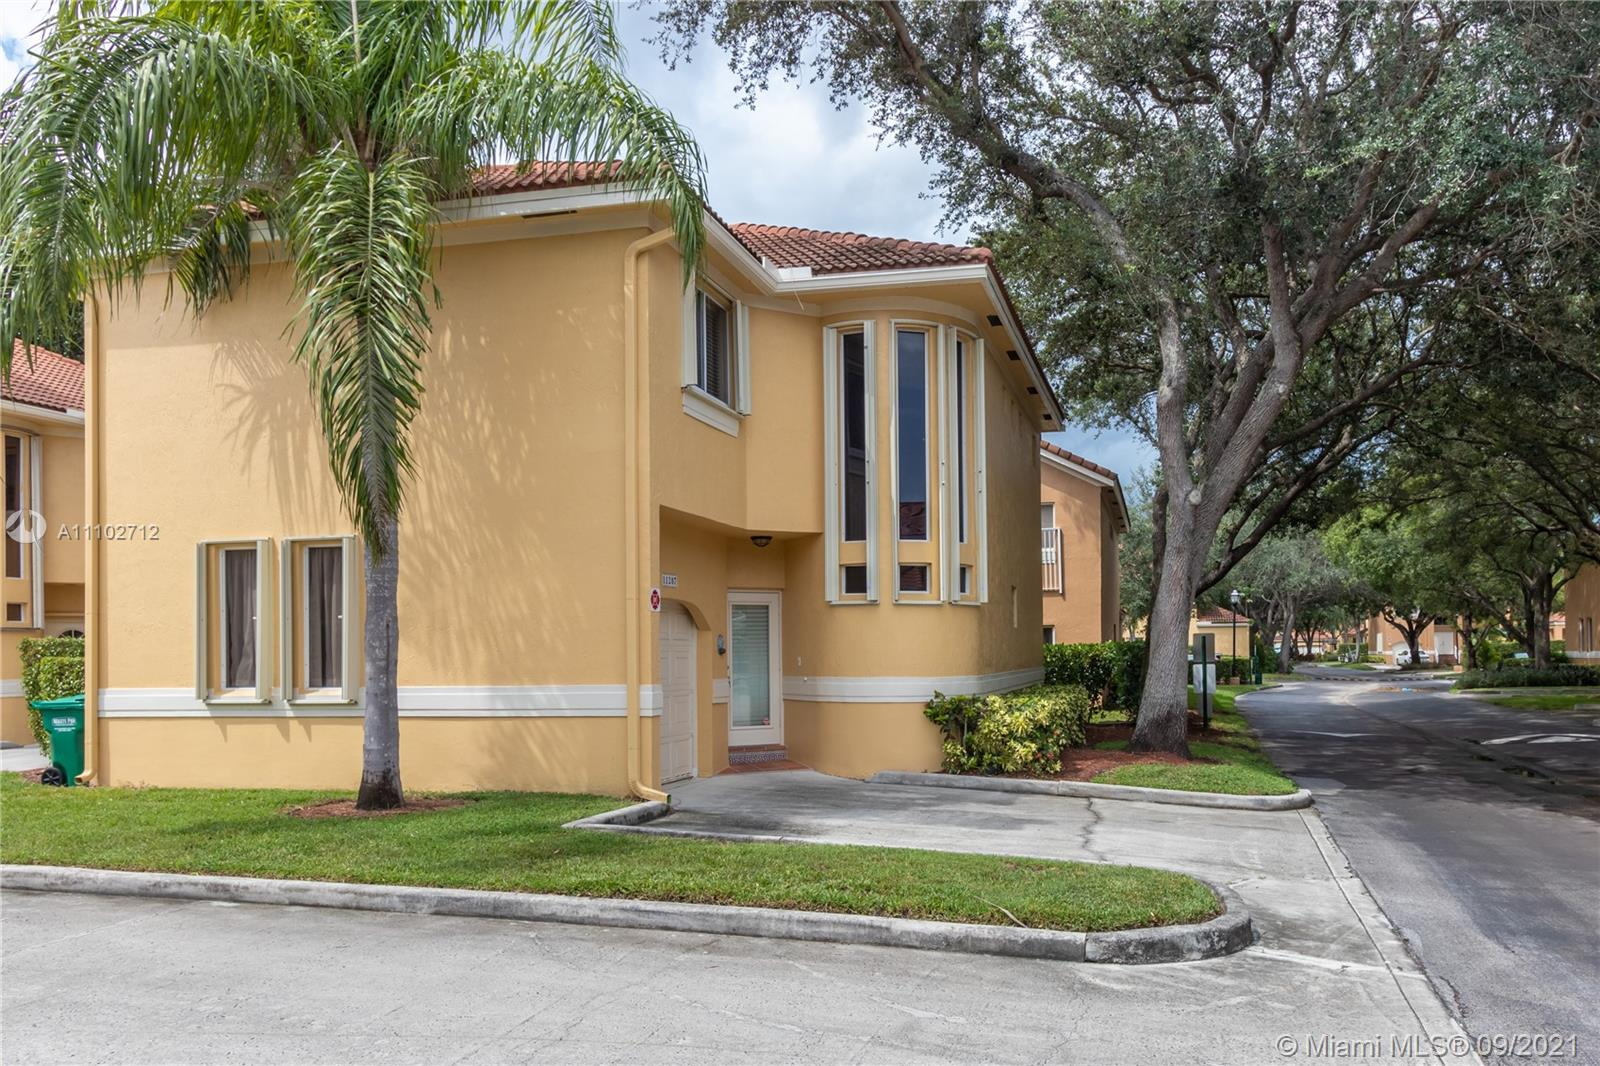 11207 Lakeview Dr, Coral Springs, Florida 33071